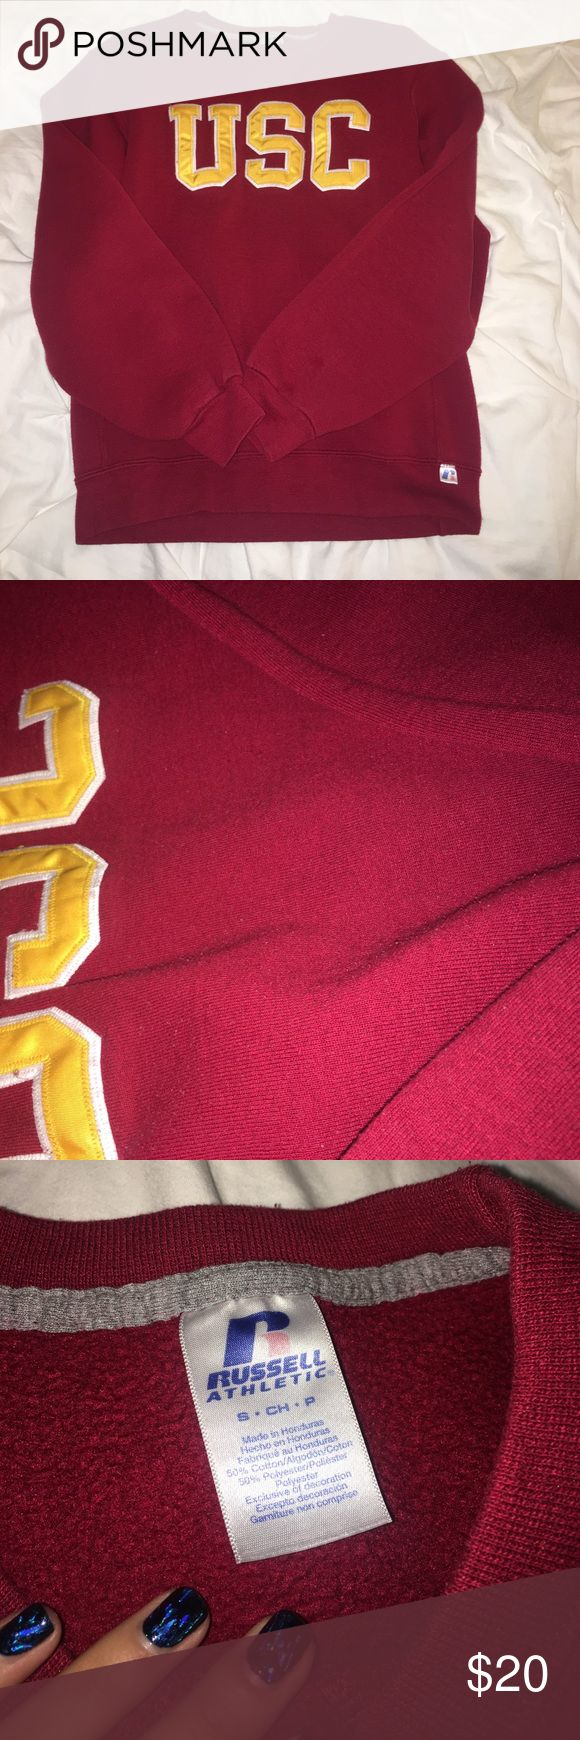 USC sweatshirt - crew neck style cute USC crew neck sweatshirt! Super comfy and cozy. Has minor pilling but it doesn't affect the wear. The inside isn't as soft as it used to be but still has a lot of life left! Size small Tops Sweatshirts & Hoodies